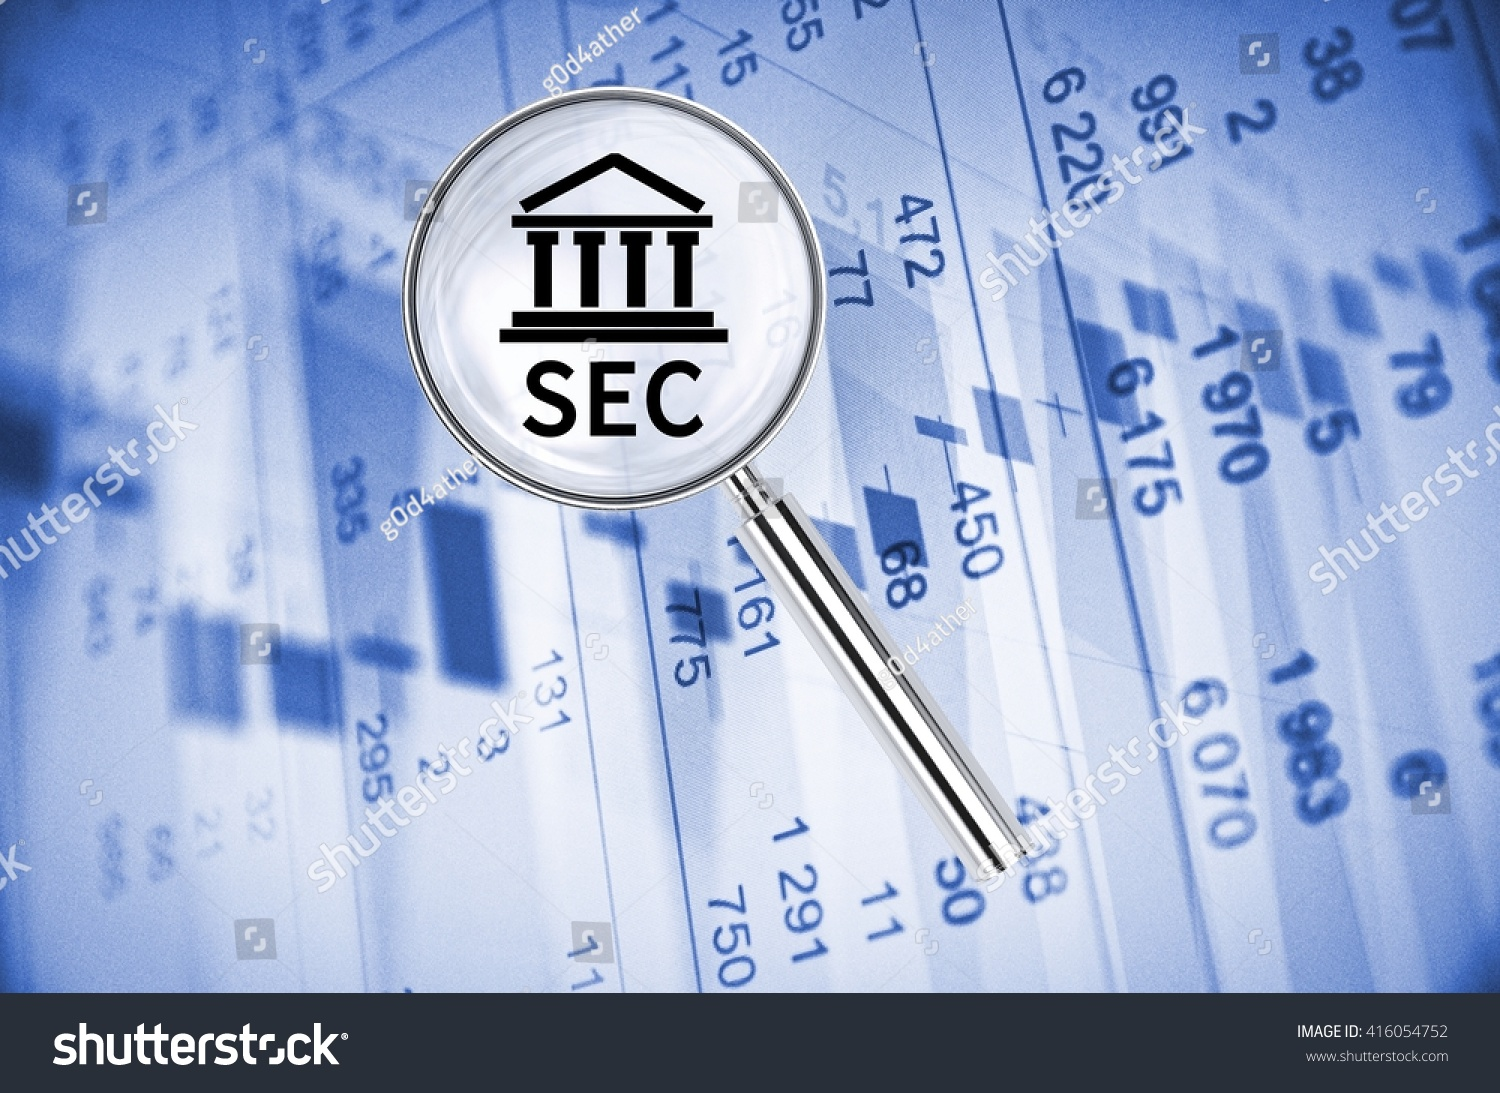 Magnifying lens over background building icon stock illustration magnifying lens over background with building icon and text sec with the financial data visible biocorpaavc